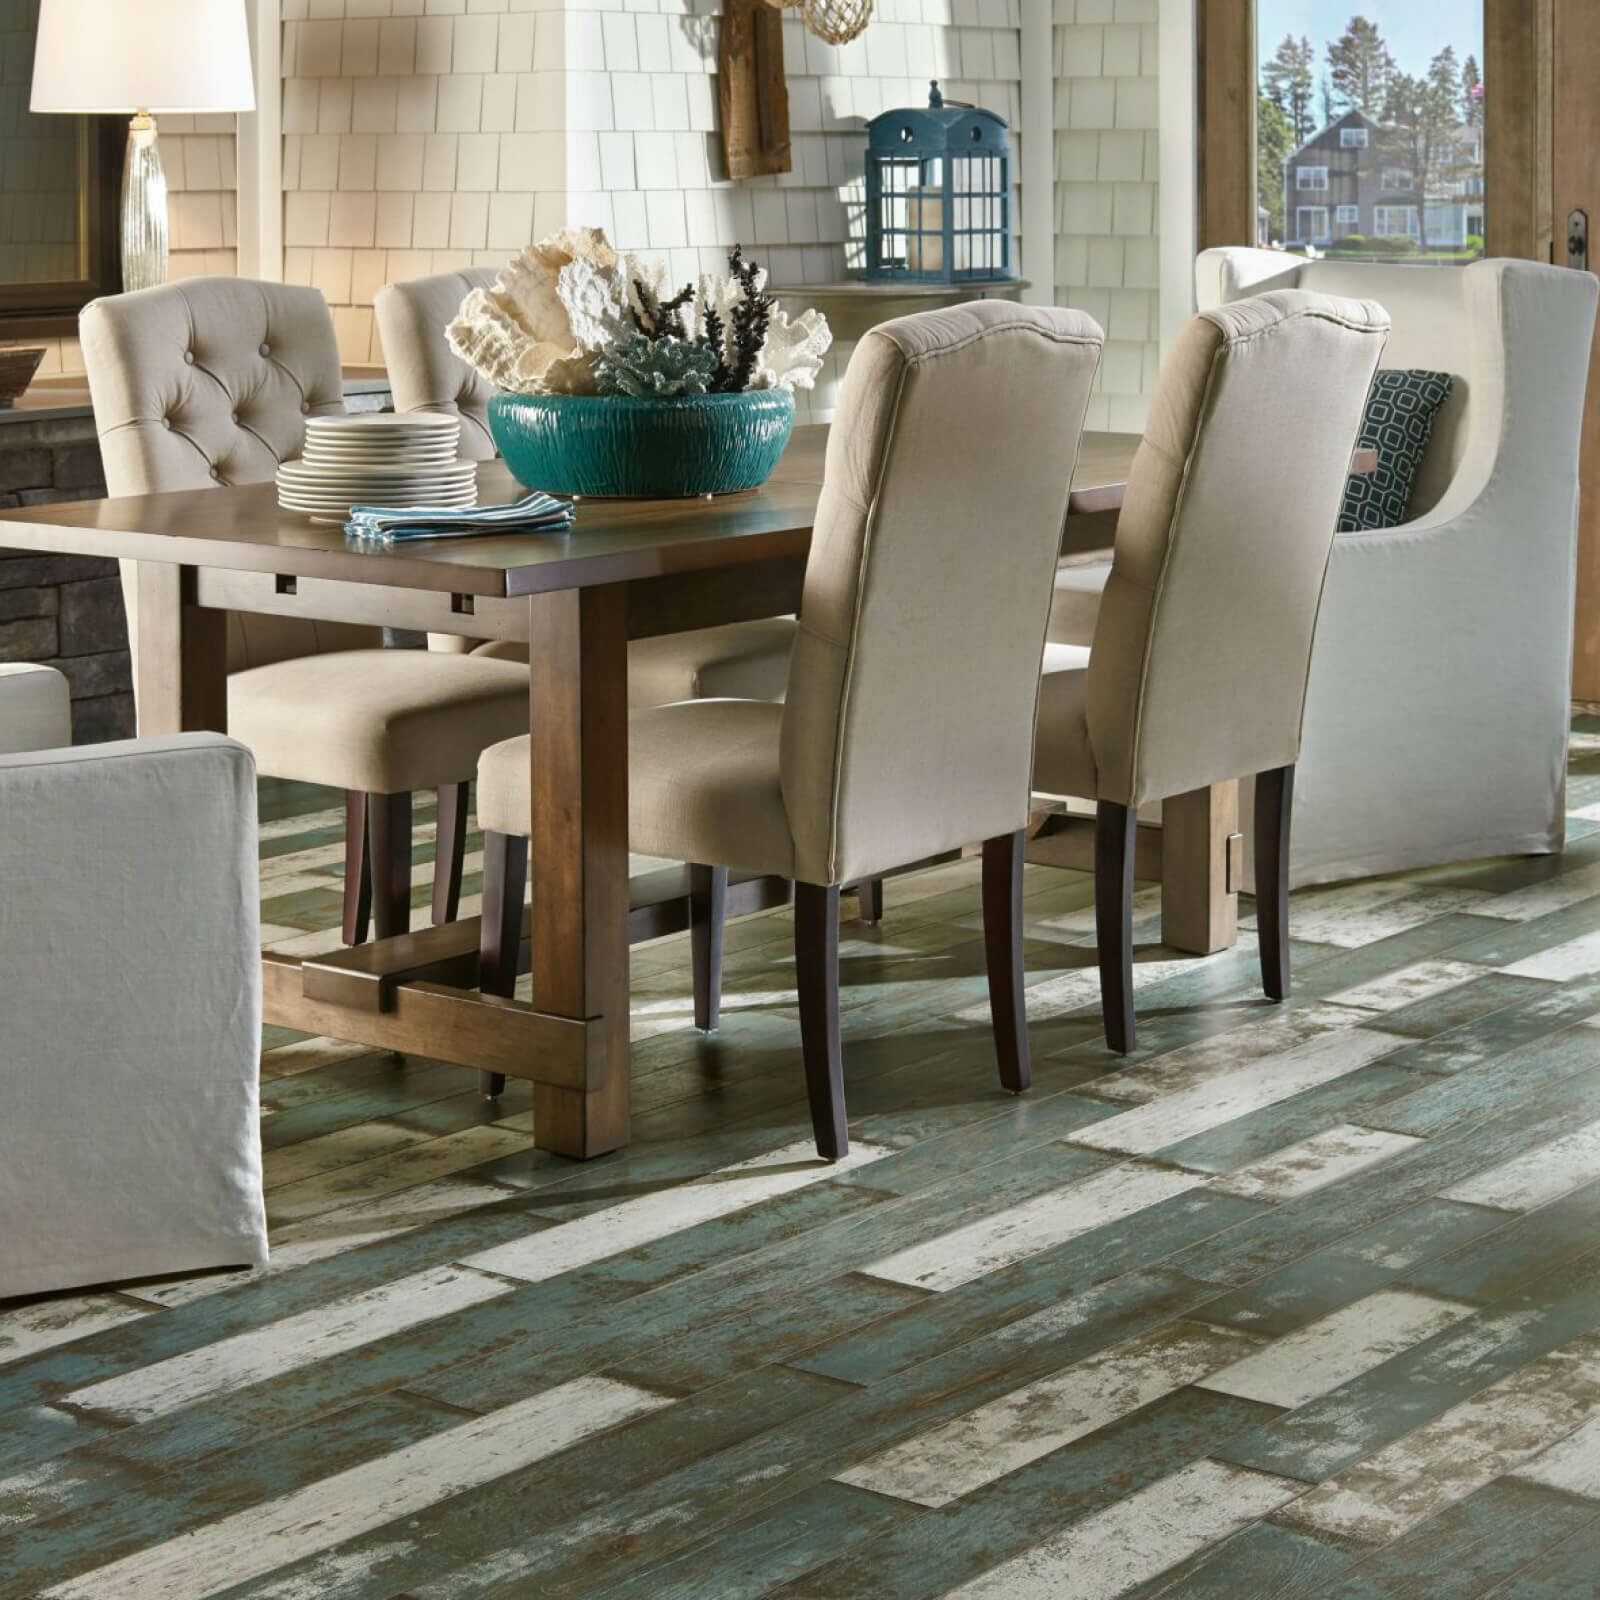 Dining room laminate floor | McCool's Flooring